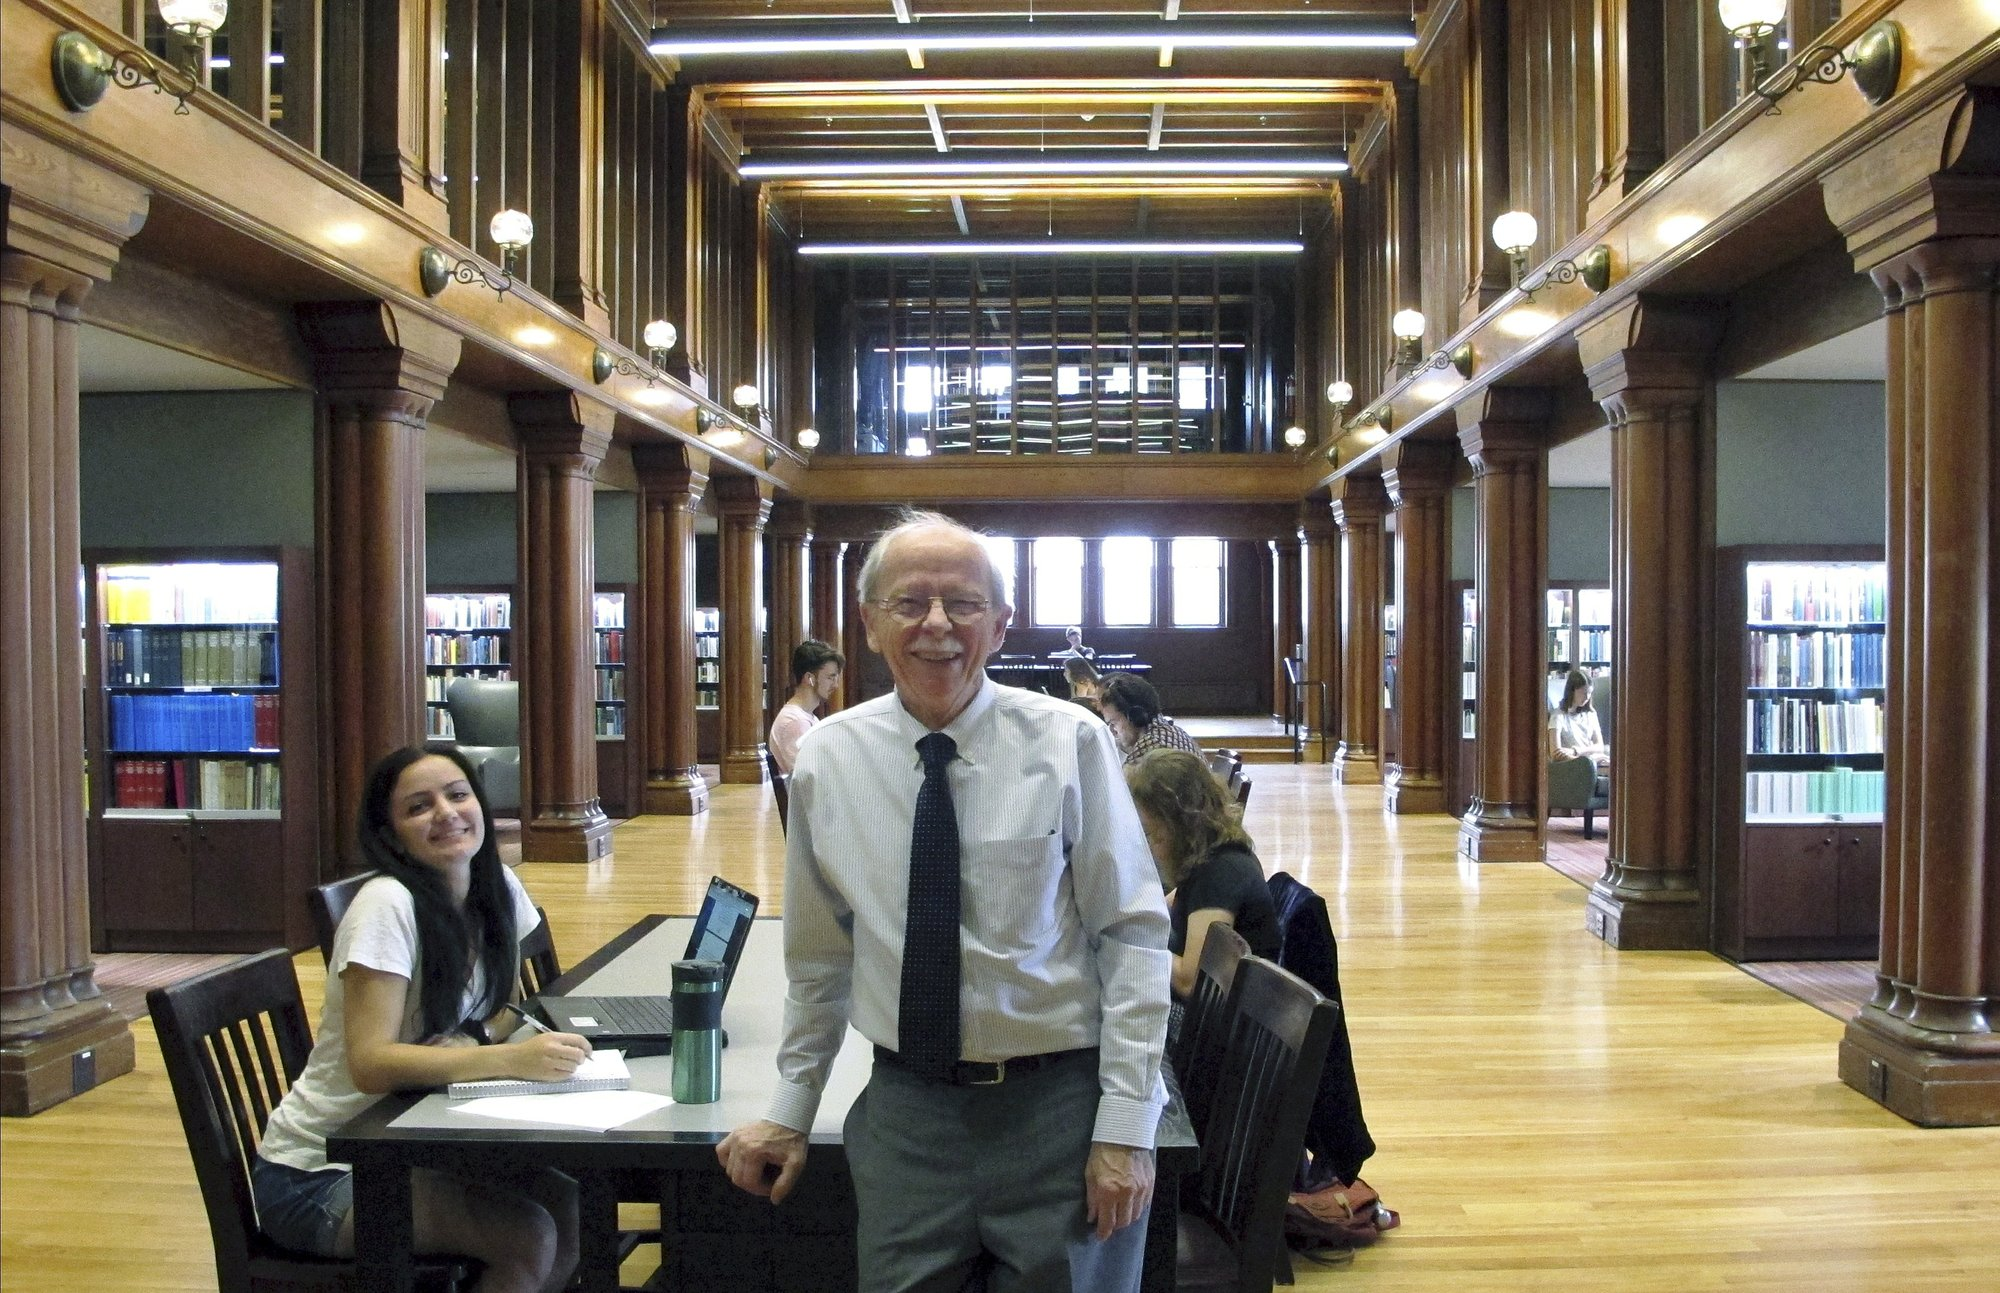 Collection of premier proverb scholar opens at UVM